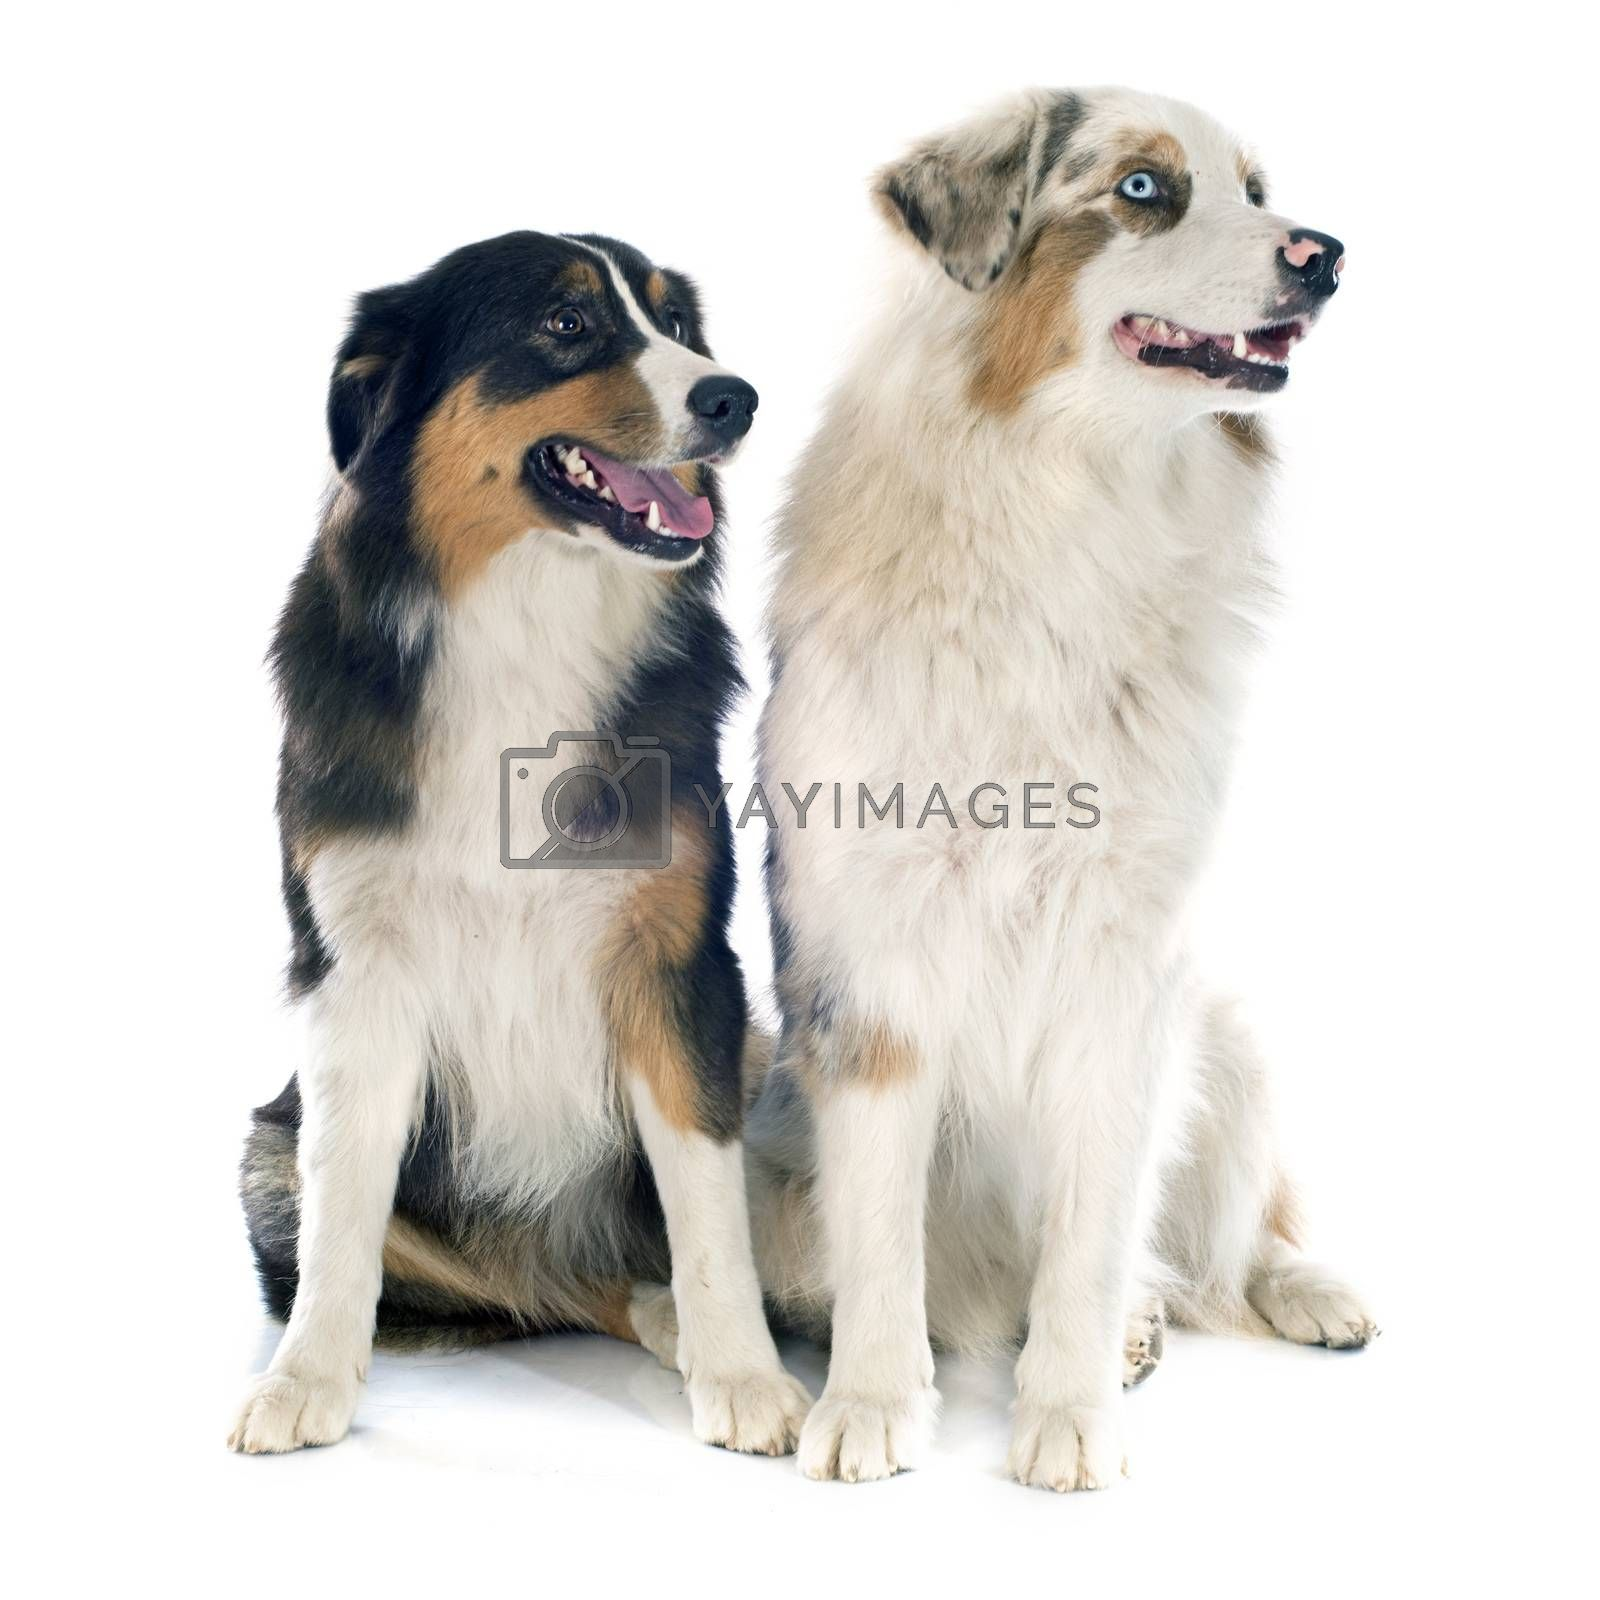 Royalty free image of australian shepherds by cynoclub